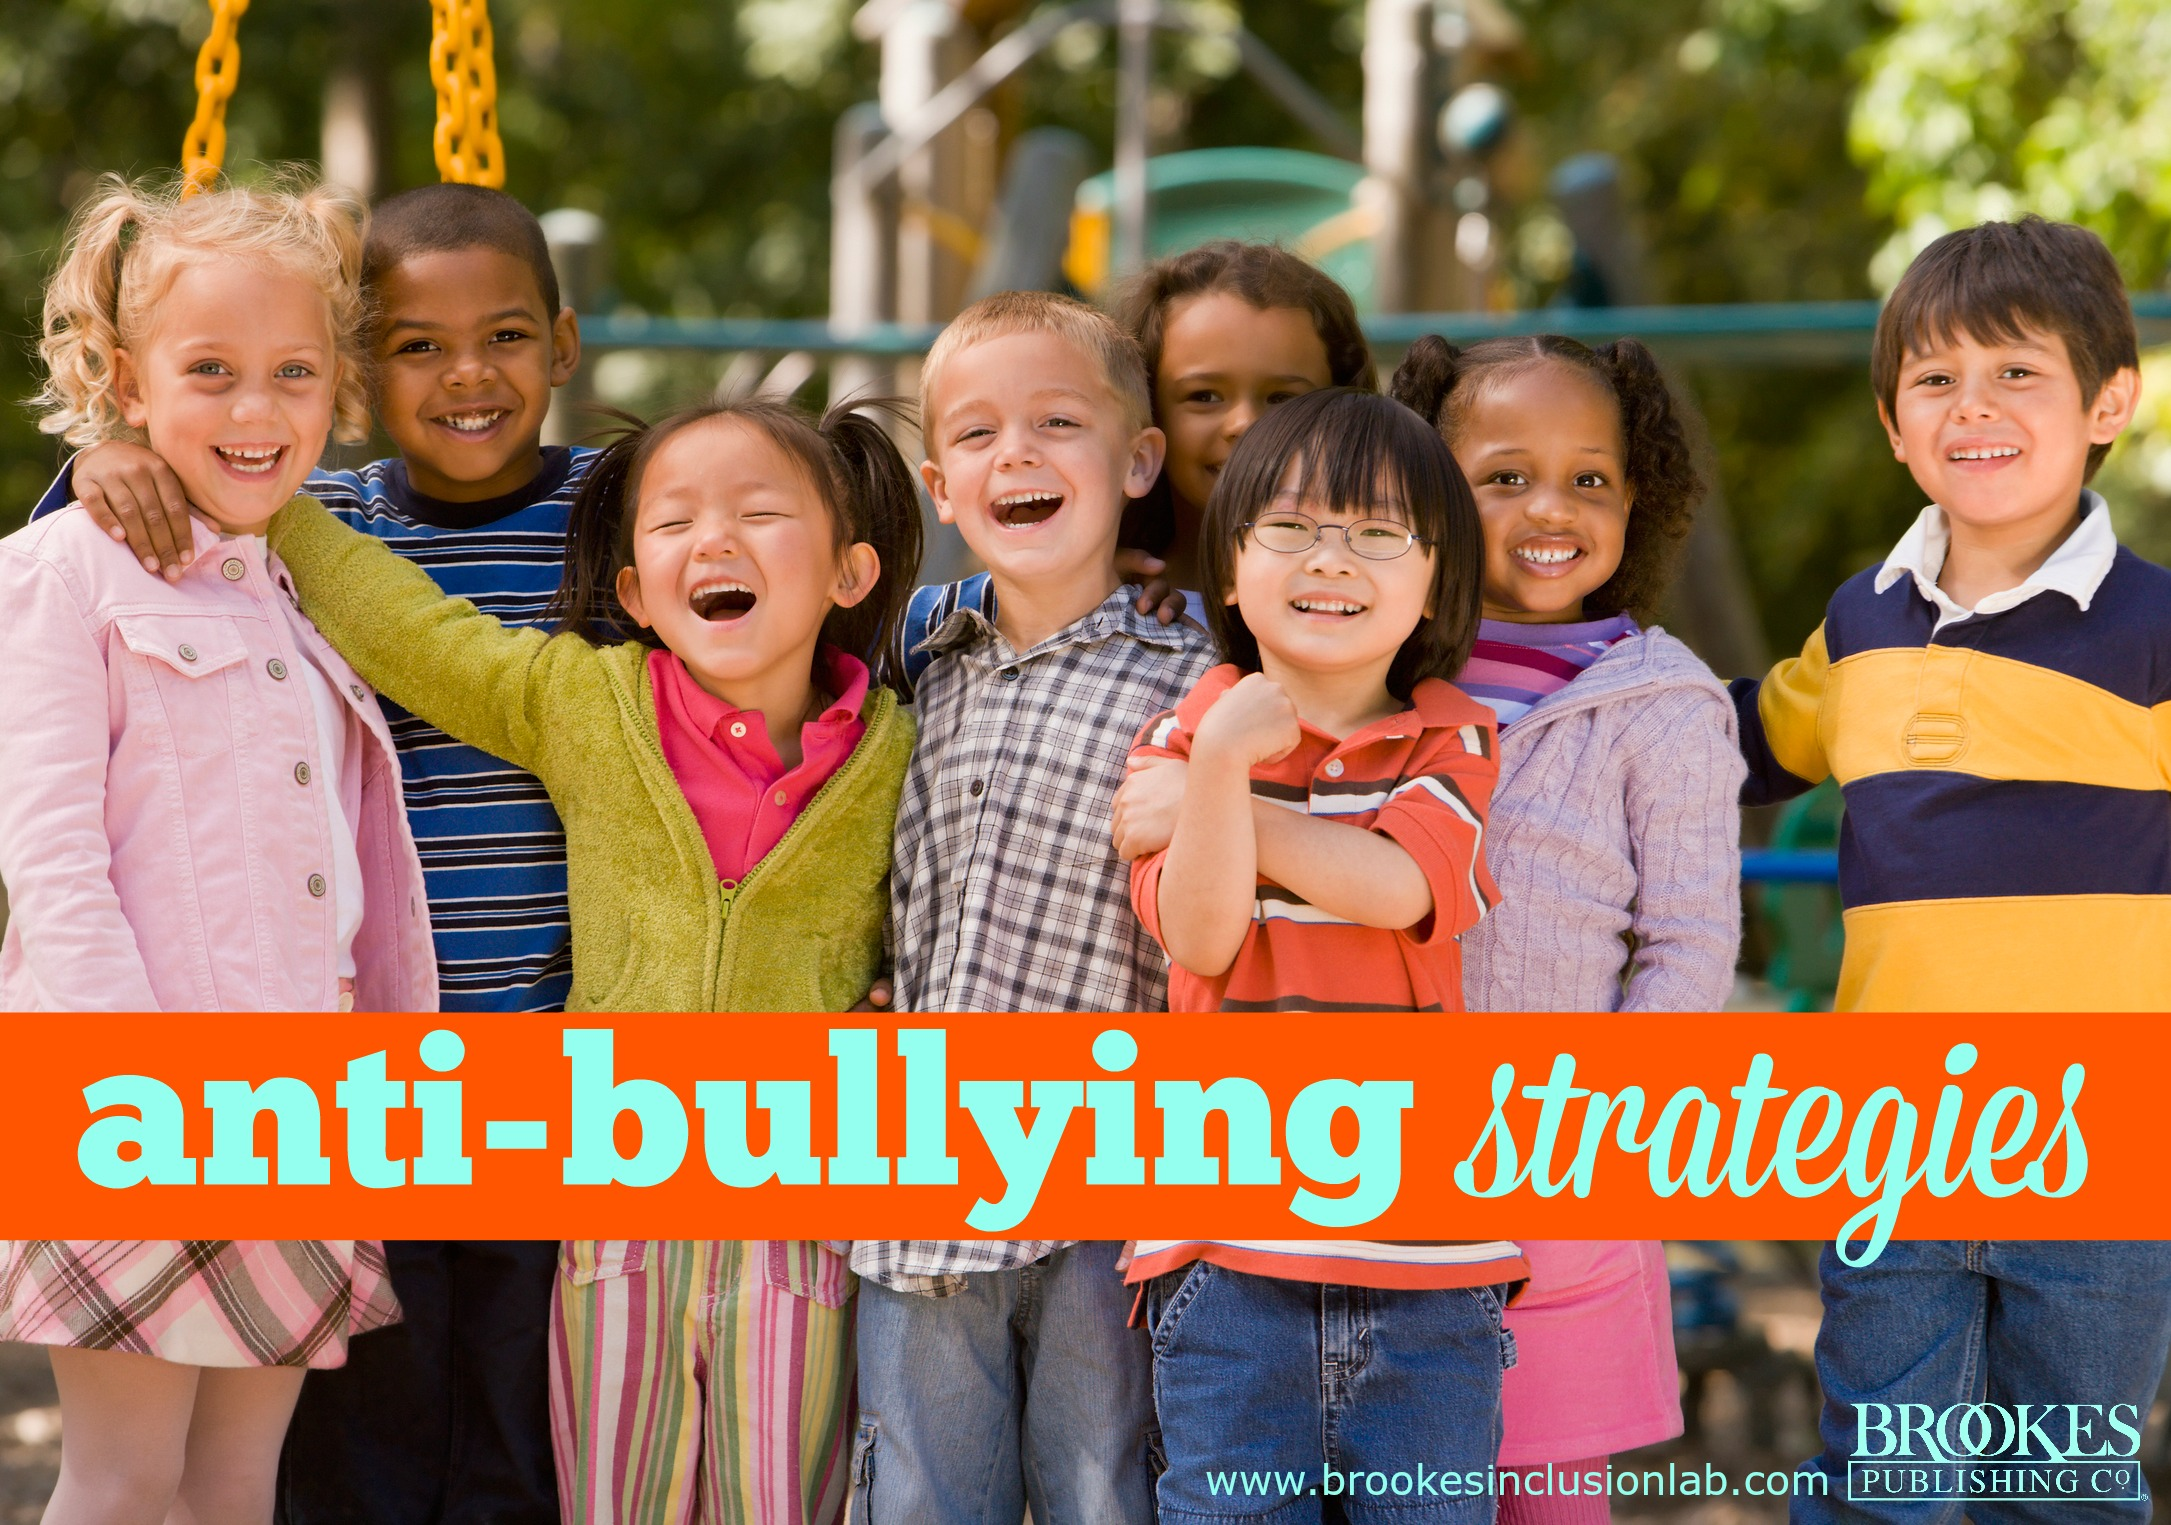 13 Things You Can Do to Reduce Bullying in Your School